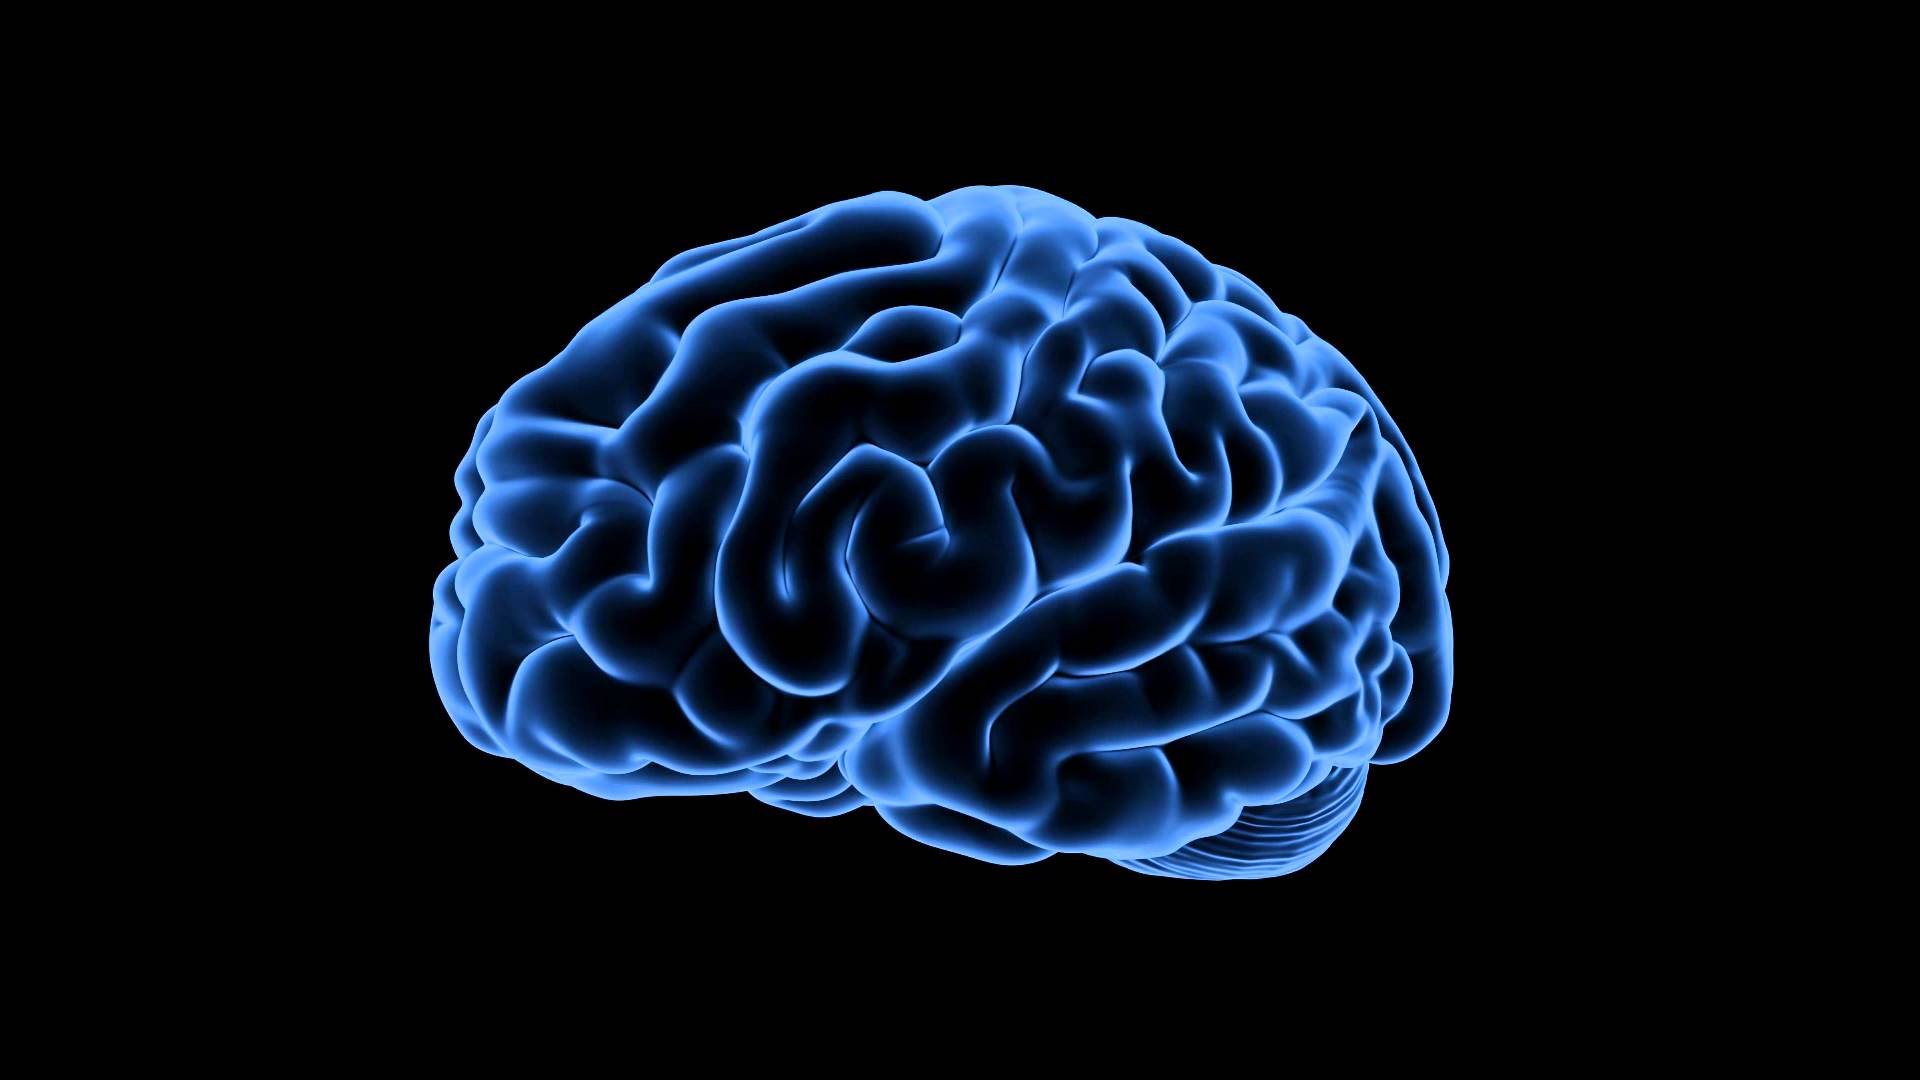 Risk avoidance in elderly linked to brain structure, not age